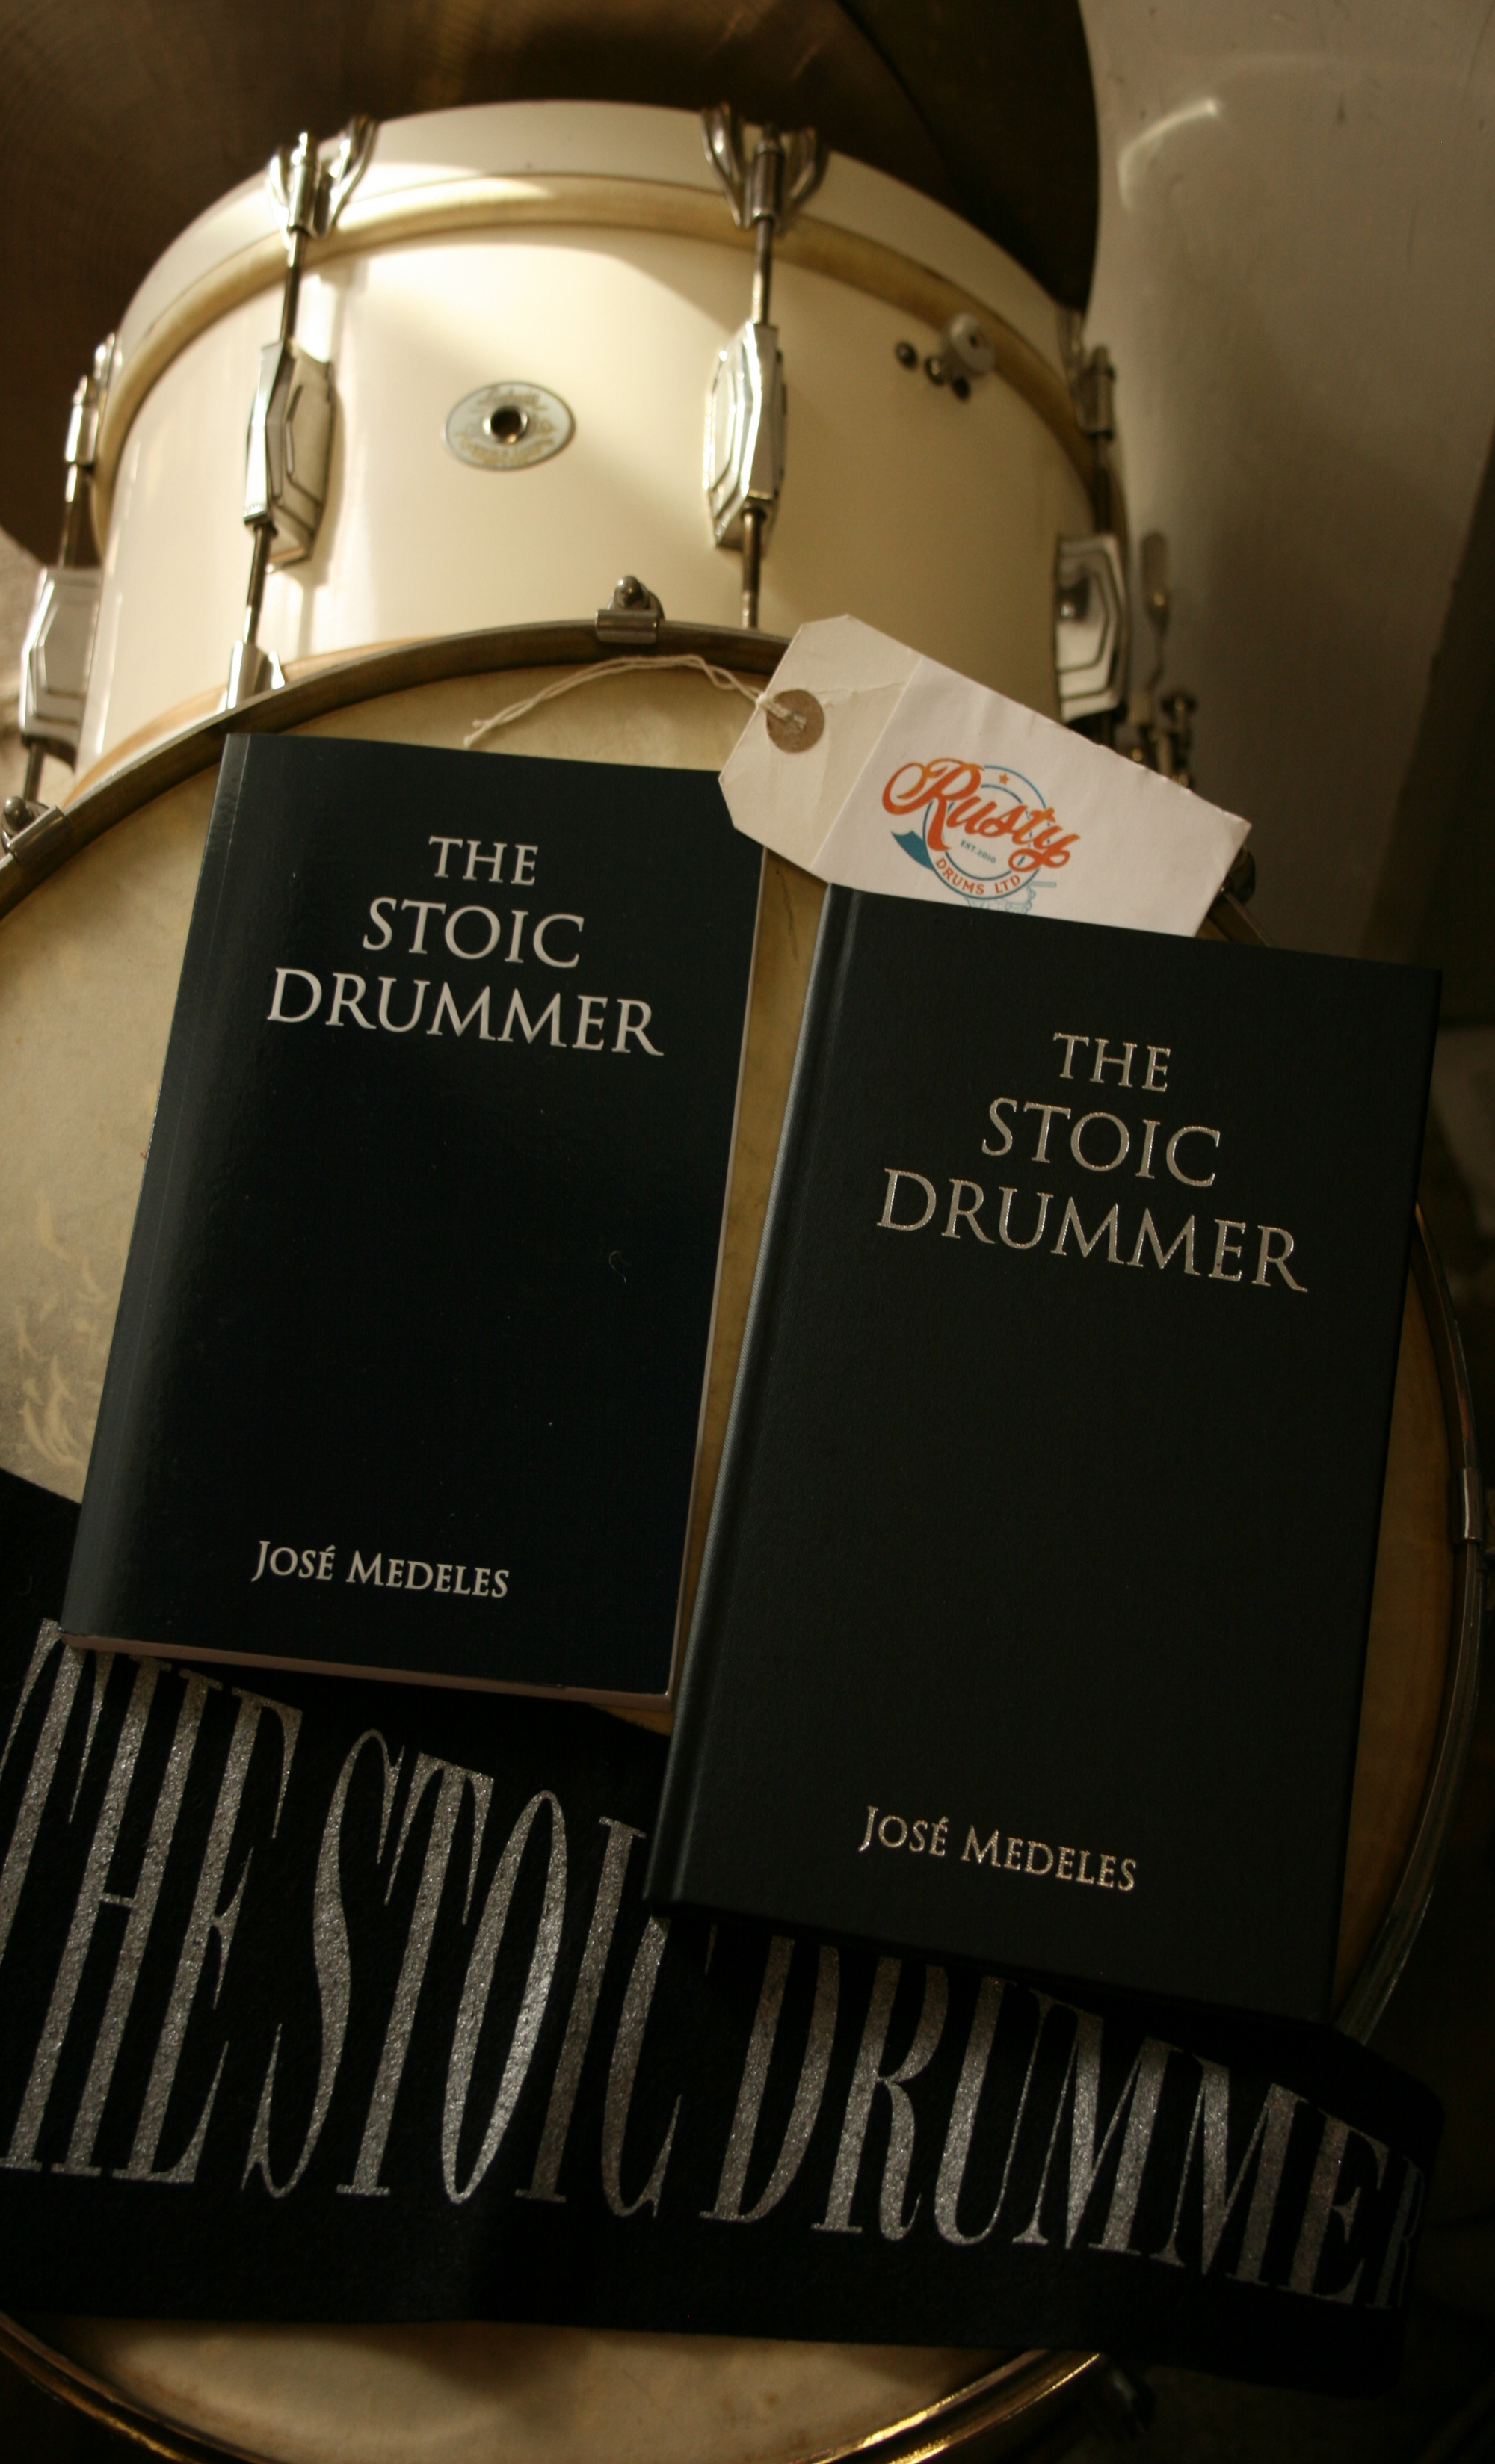 The Stoic Drummer